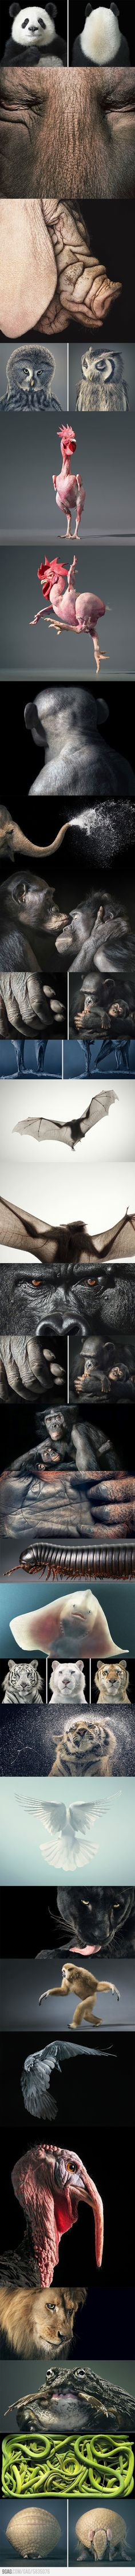 Amazing Animal Portraits by Tim Flach. S)